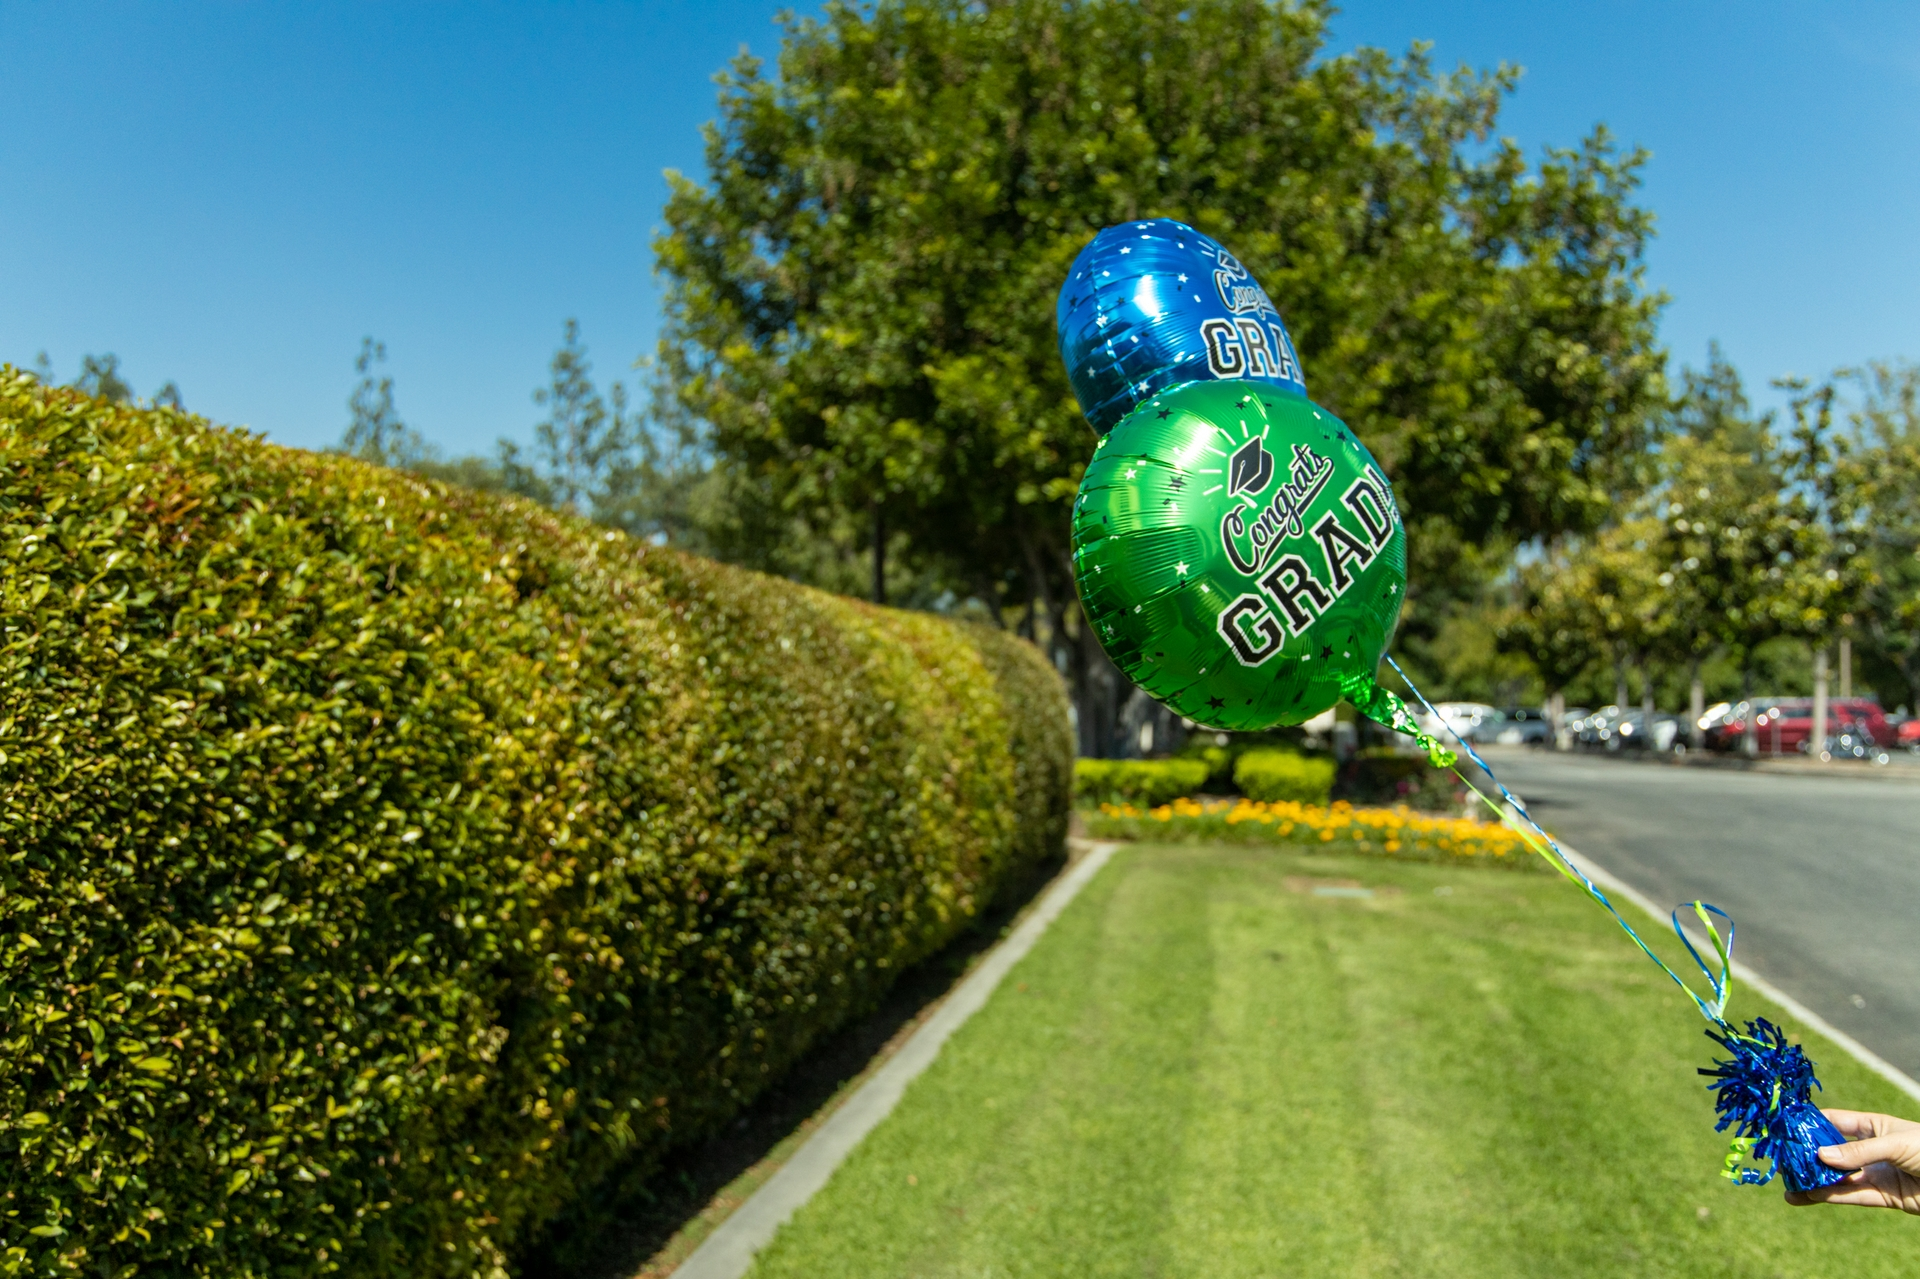 Stores and vendors should only sell properly weighted balloons, which would help prevent the more than 1,000 outages SCE has experienced every year since 2017.